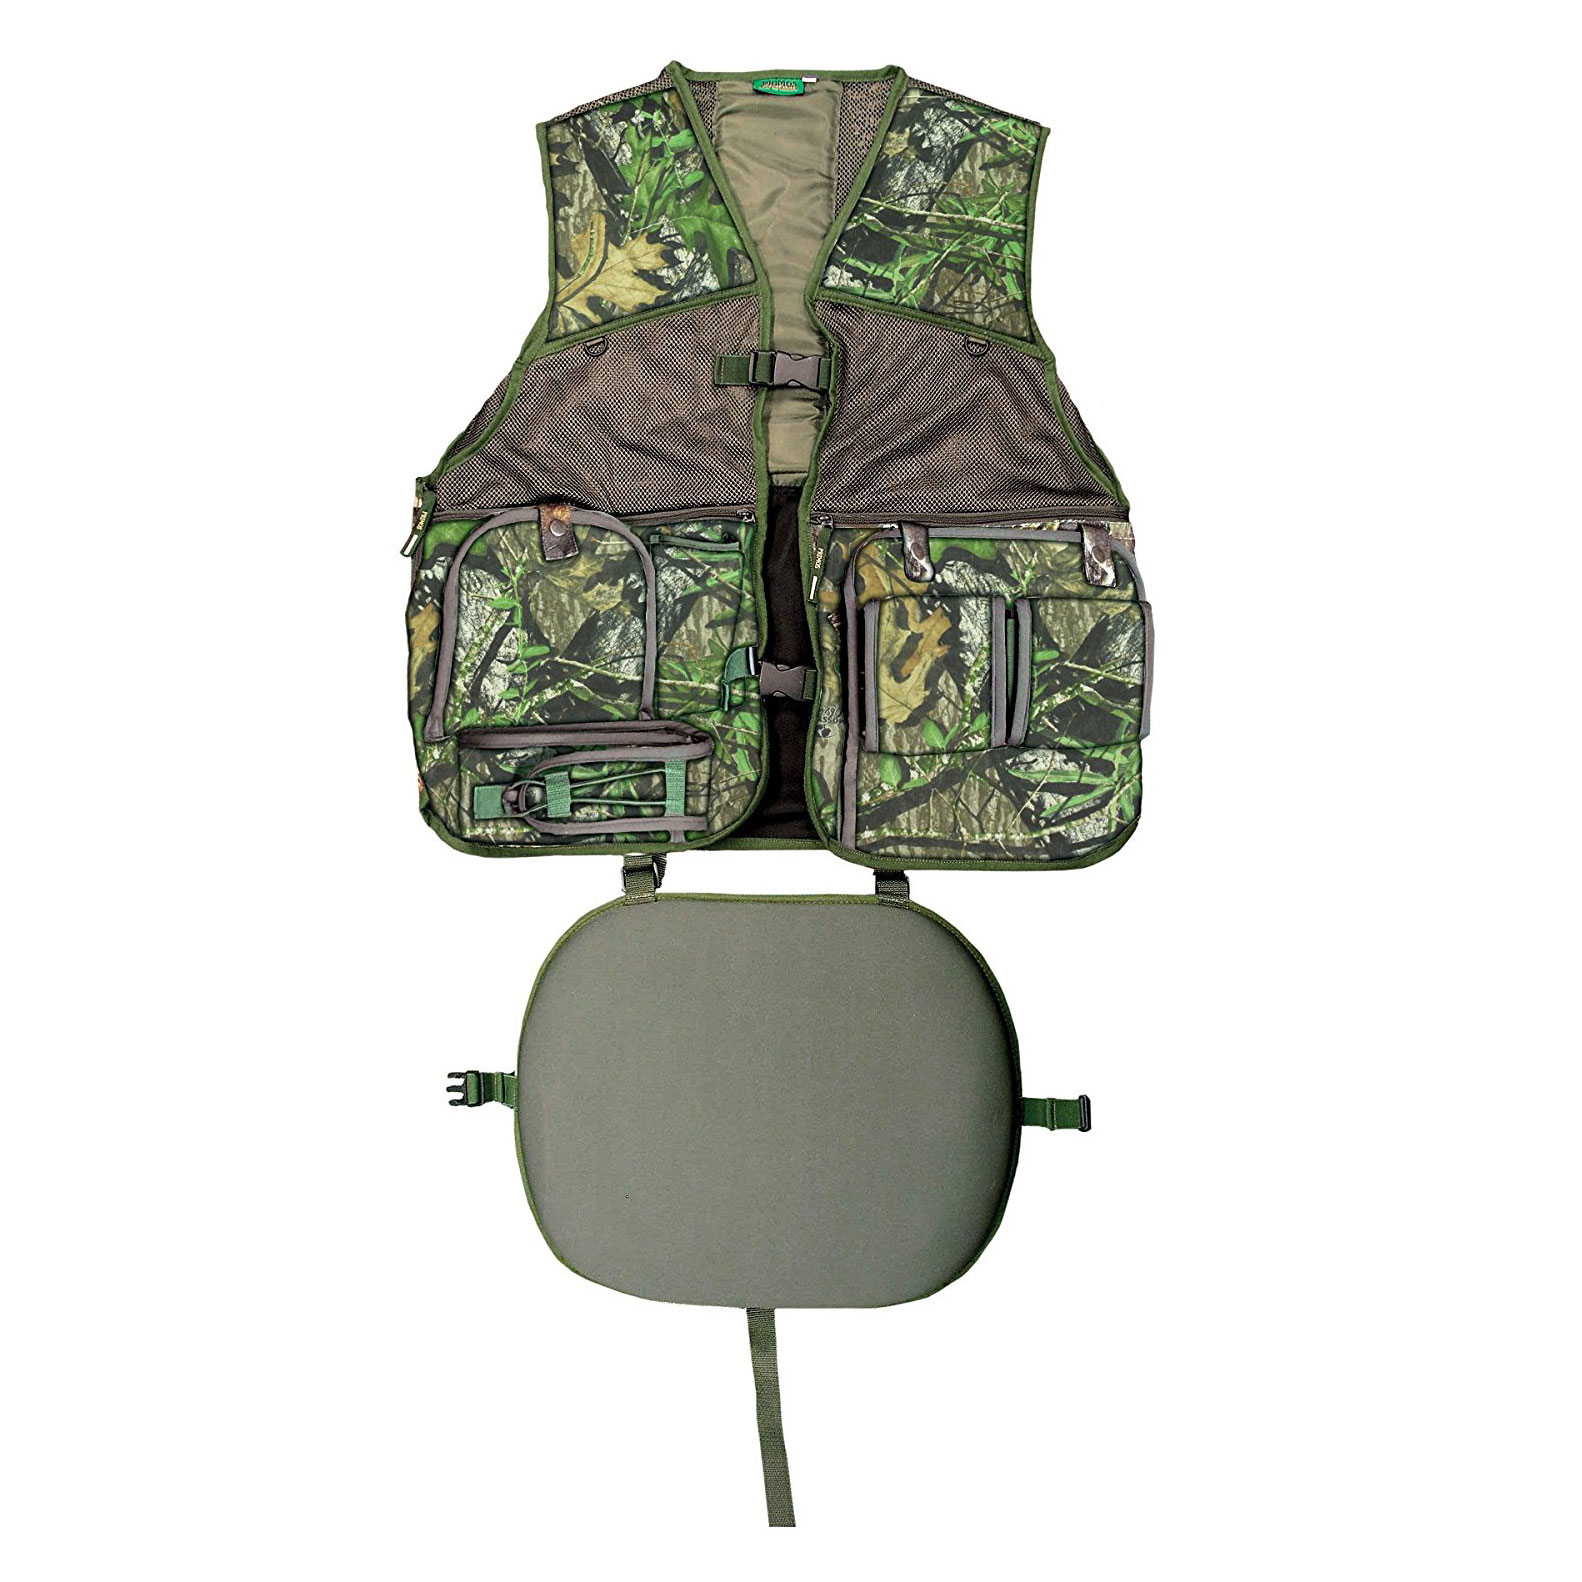 Primos PS6560 Gobbler Vest Camo L/XL Mesh and TreeHide